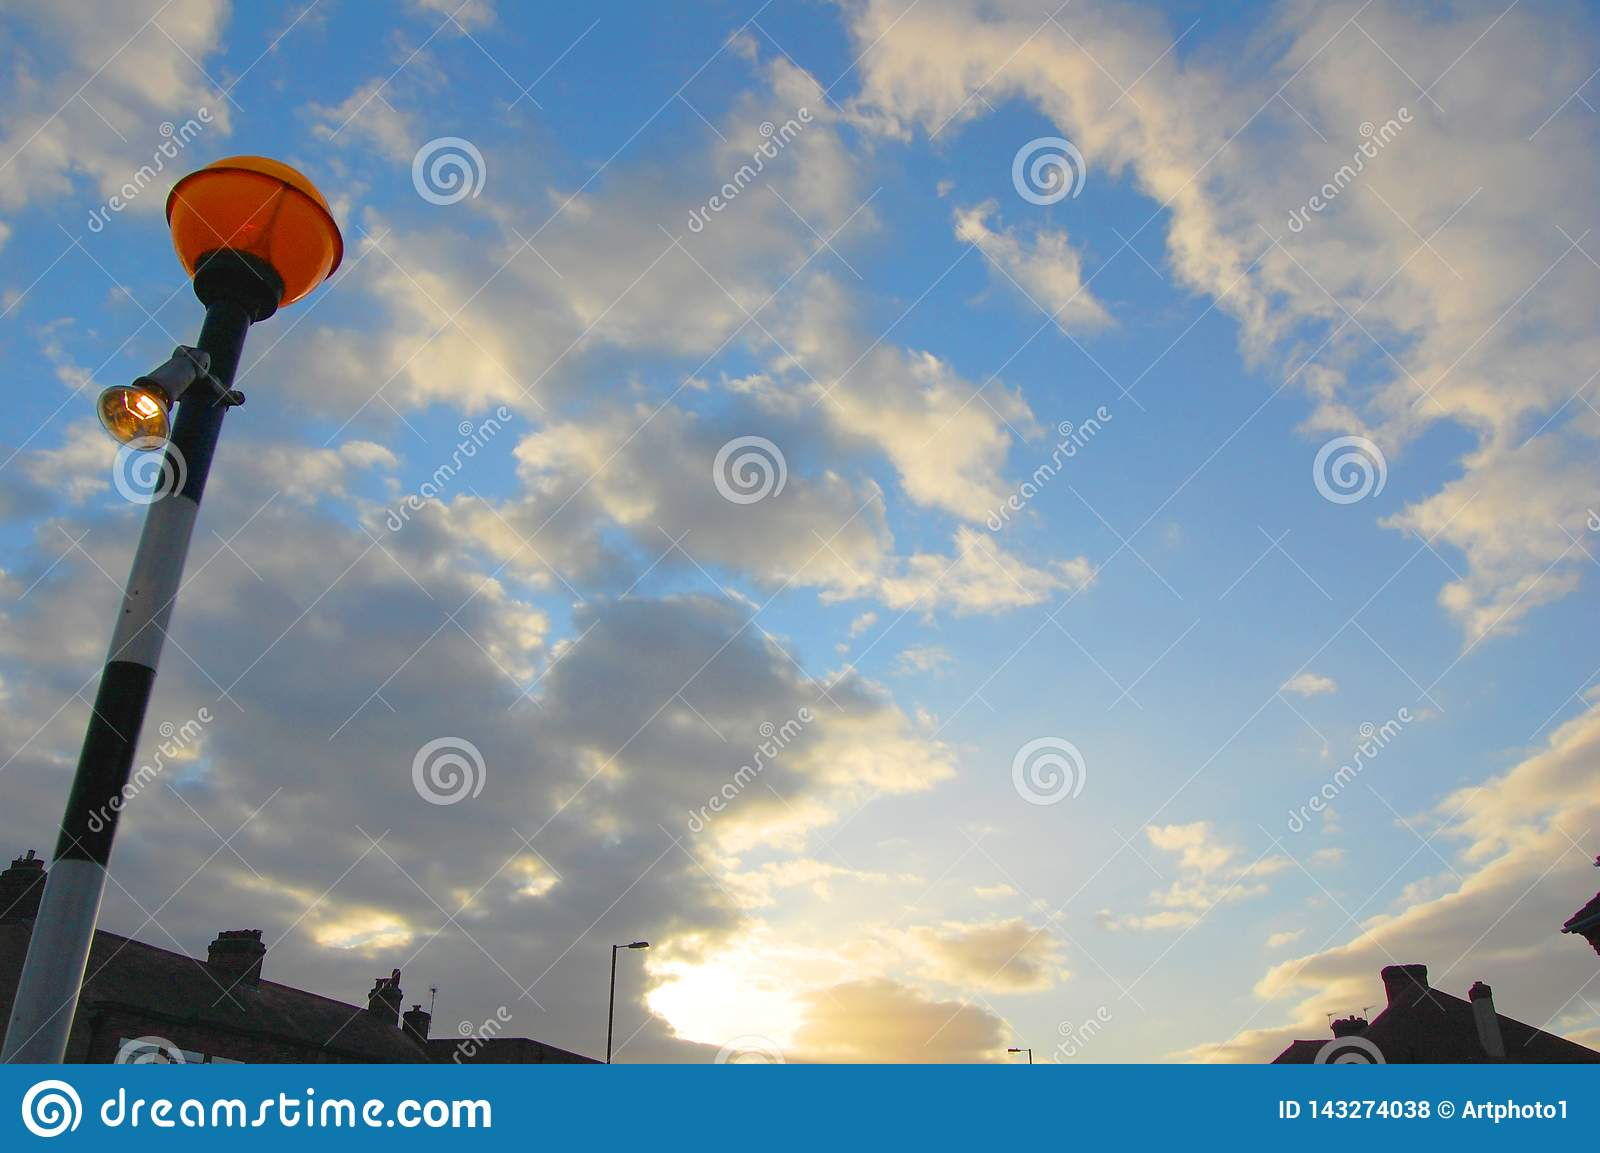 Illuminated orange safety crossing beacon set against peaceful evening light blue and fluffy white clouds